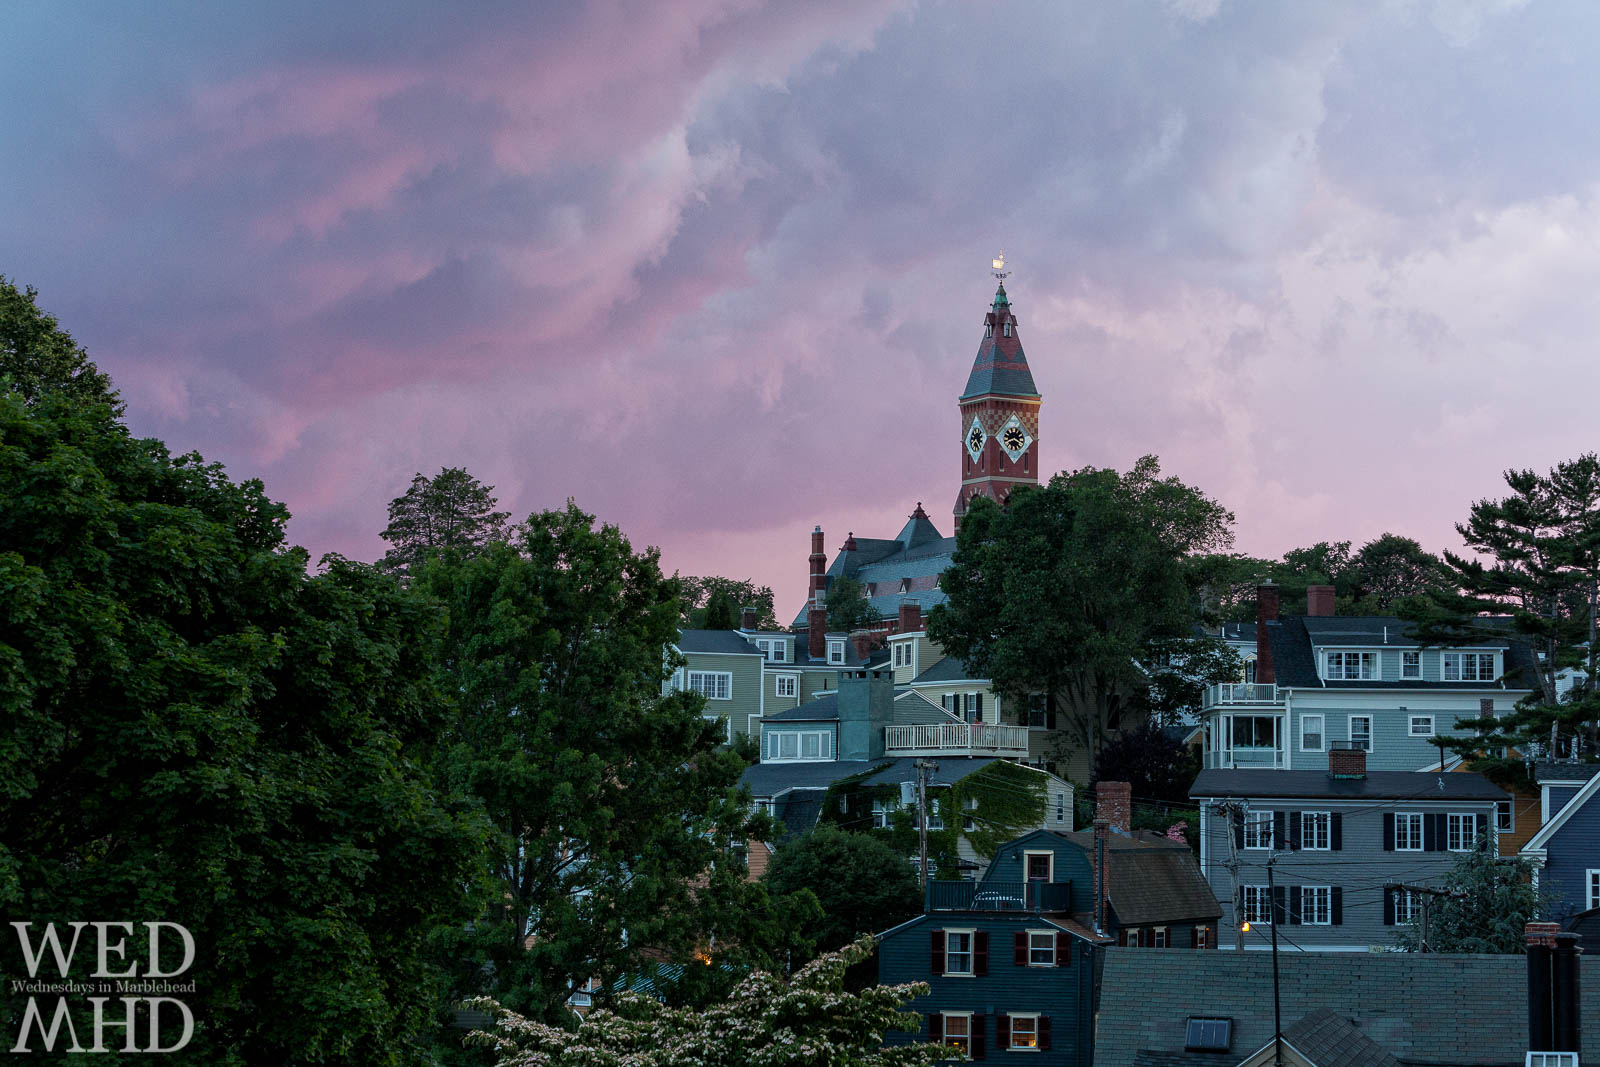 A dramatic purple sunset forms over Marblehead on July 1st as the setting sun illuminates Abbot's golden weathervane